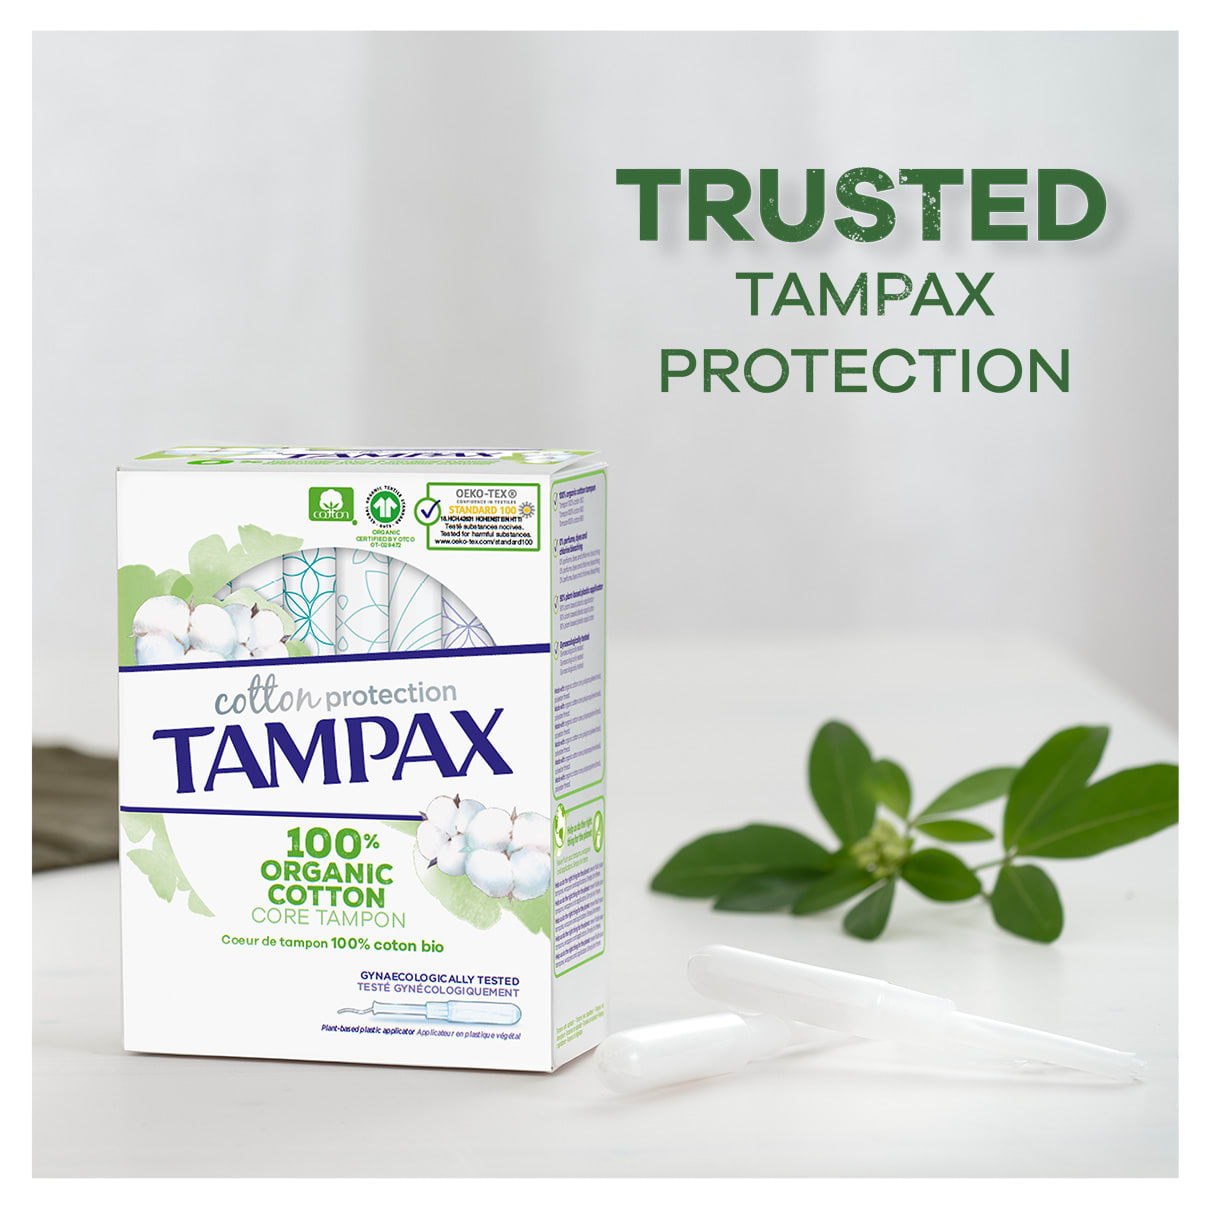 Trusted Tampax protection